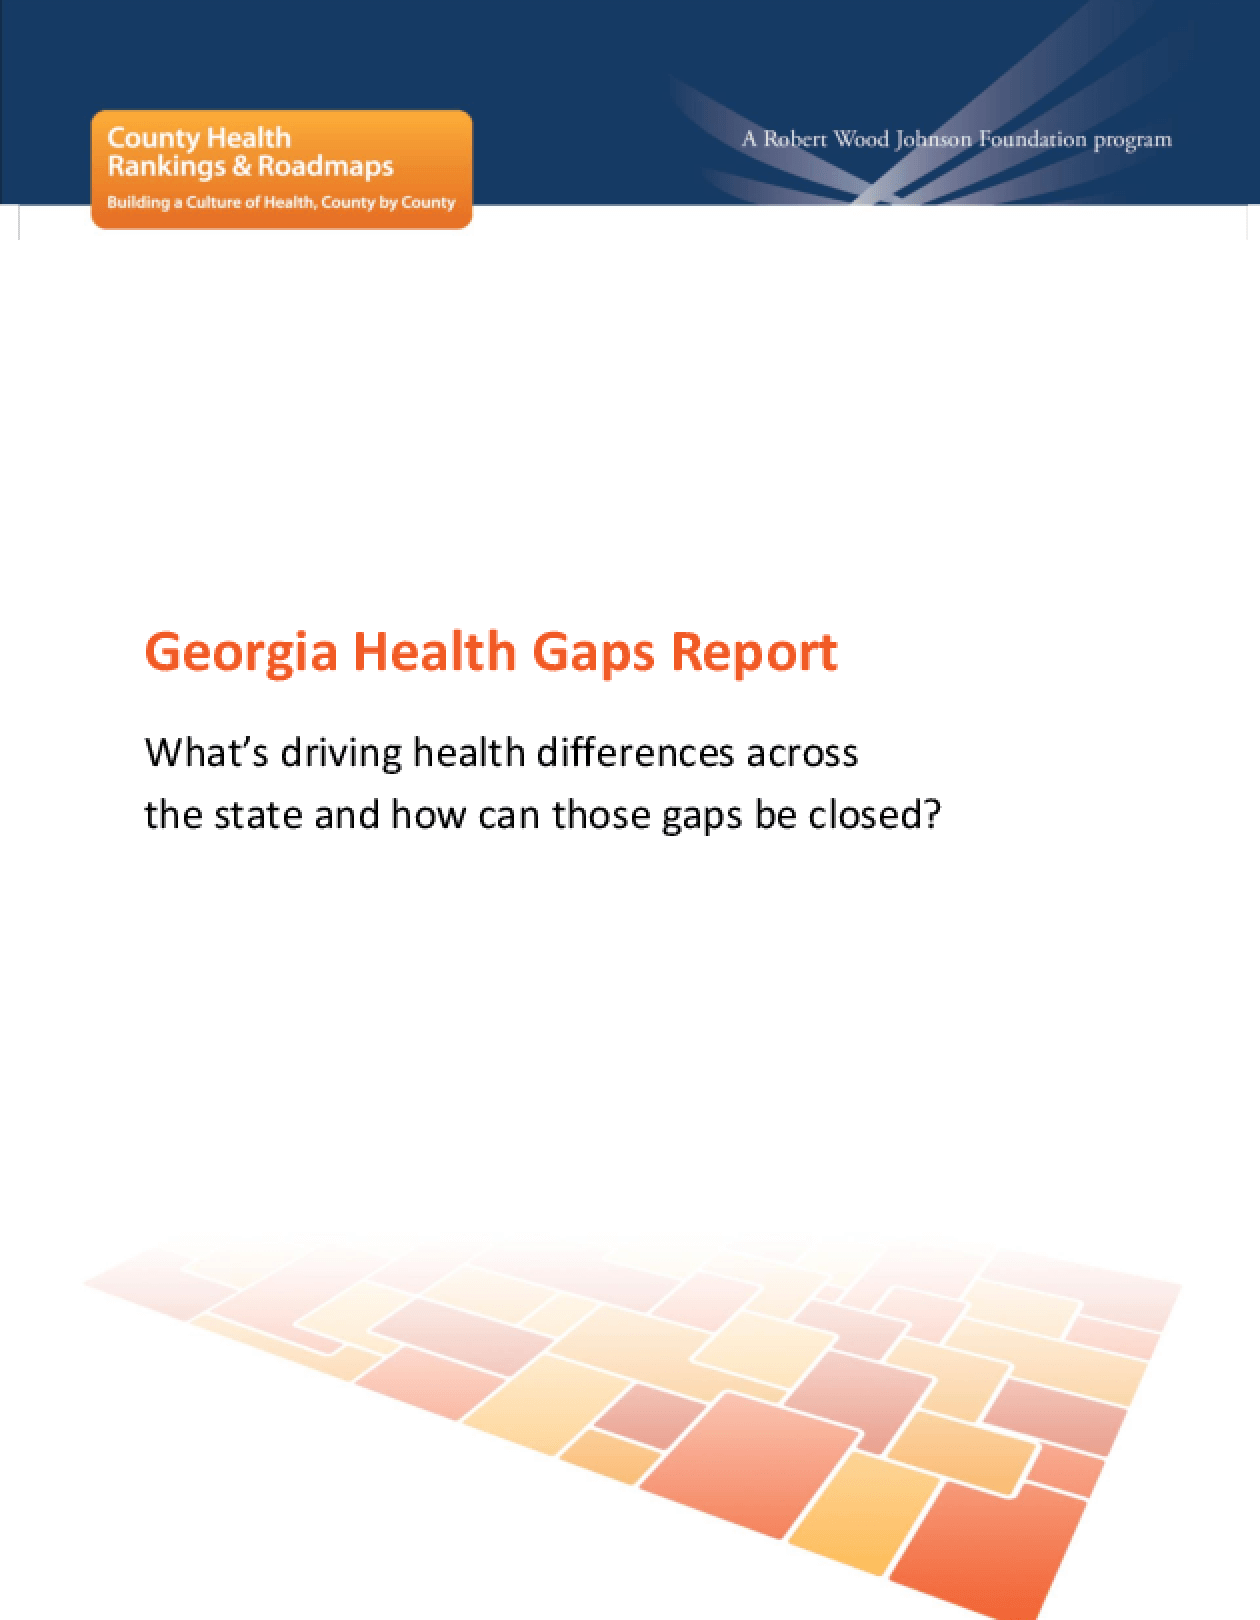 Georgia Health Gaps Report: What's Driving Health Differences Across the State and How Can Those Gaps Be Closed?